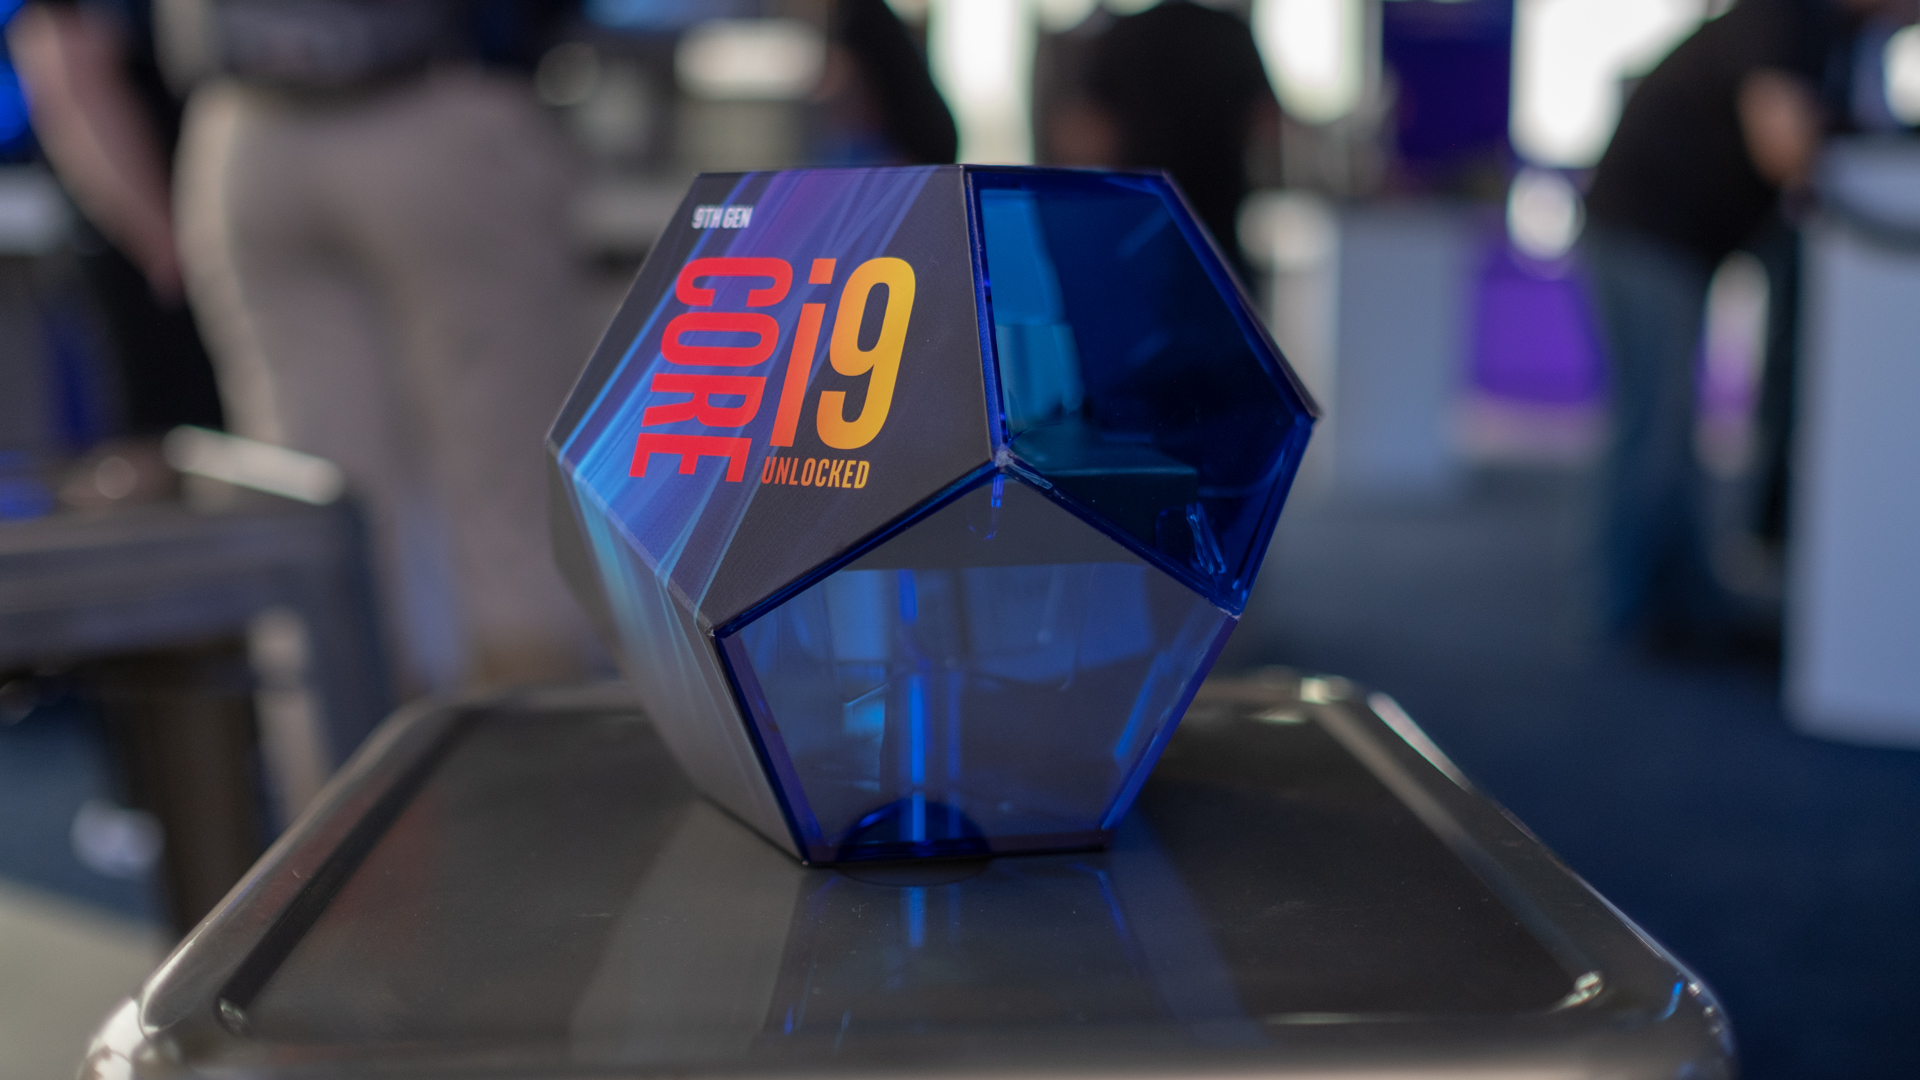 Intel announces Core i9-9900KS October launch with a swipe